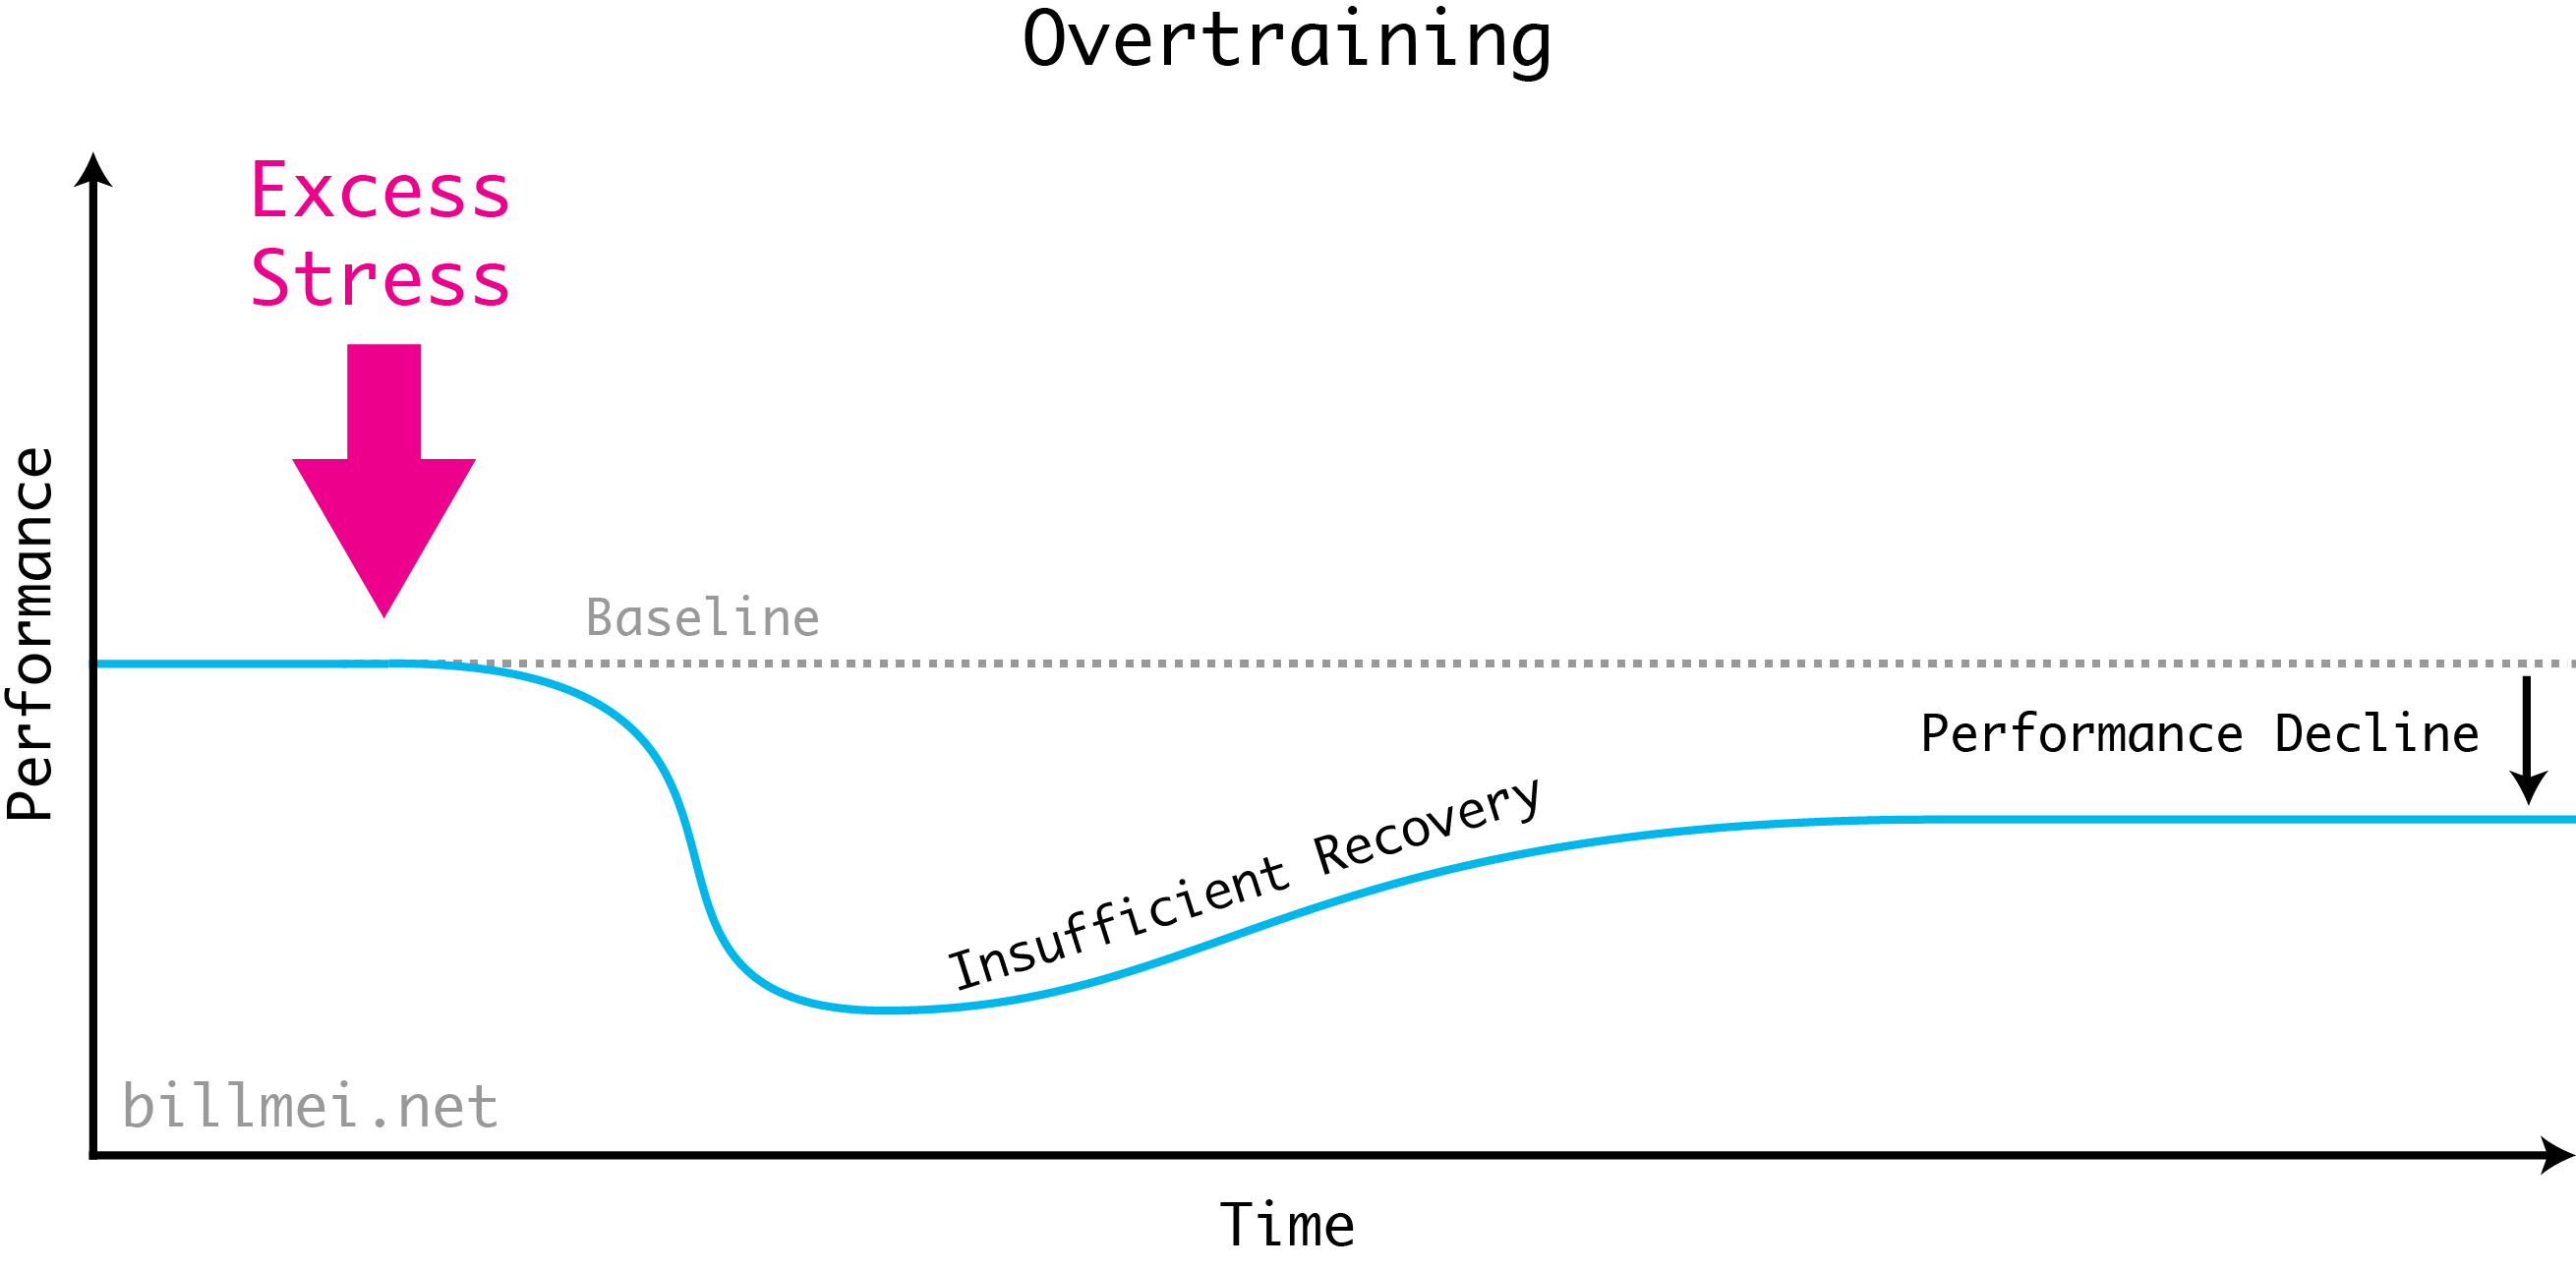 Overtraining in the Stress Recovery Adaptation (SRA) cycle. Too much stress creates a sharp performance drop-off that can't be recovered from properly. This leads to performance to revert to a level smaller than your original baseline, and hence is a performance decline.